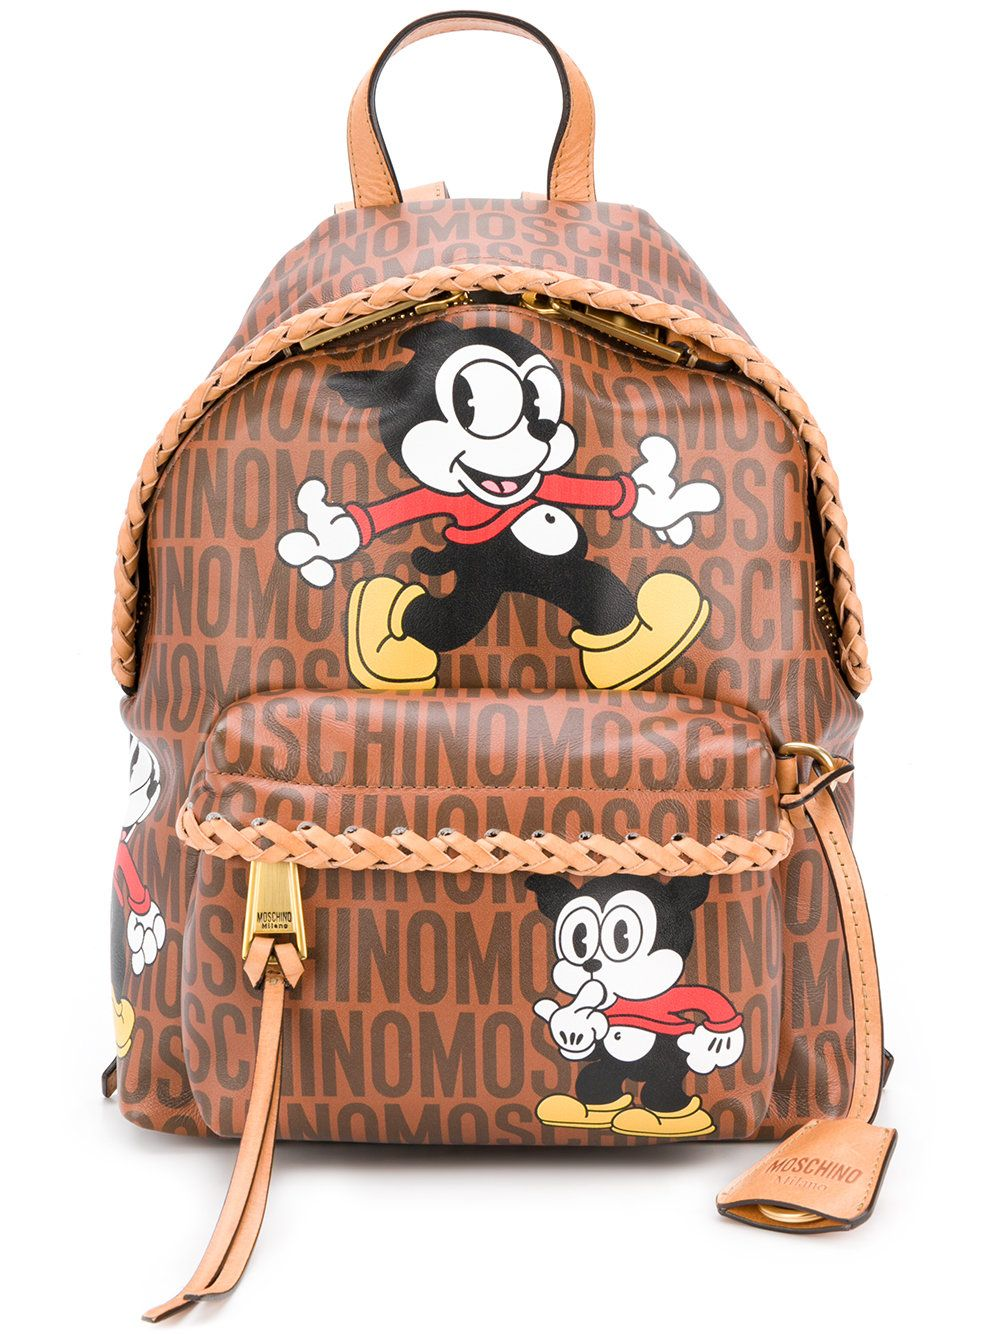 335a003ee383 Moschino Vintage Mickey backpack   O   Mickey backpack, Vintage ...